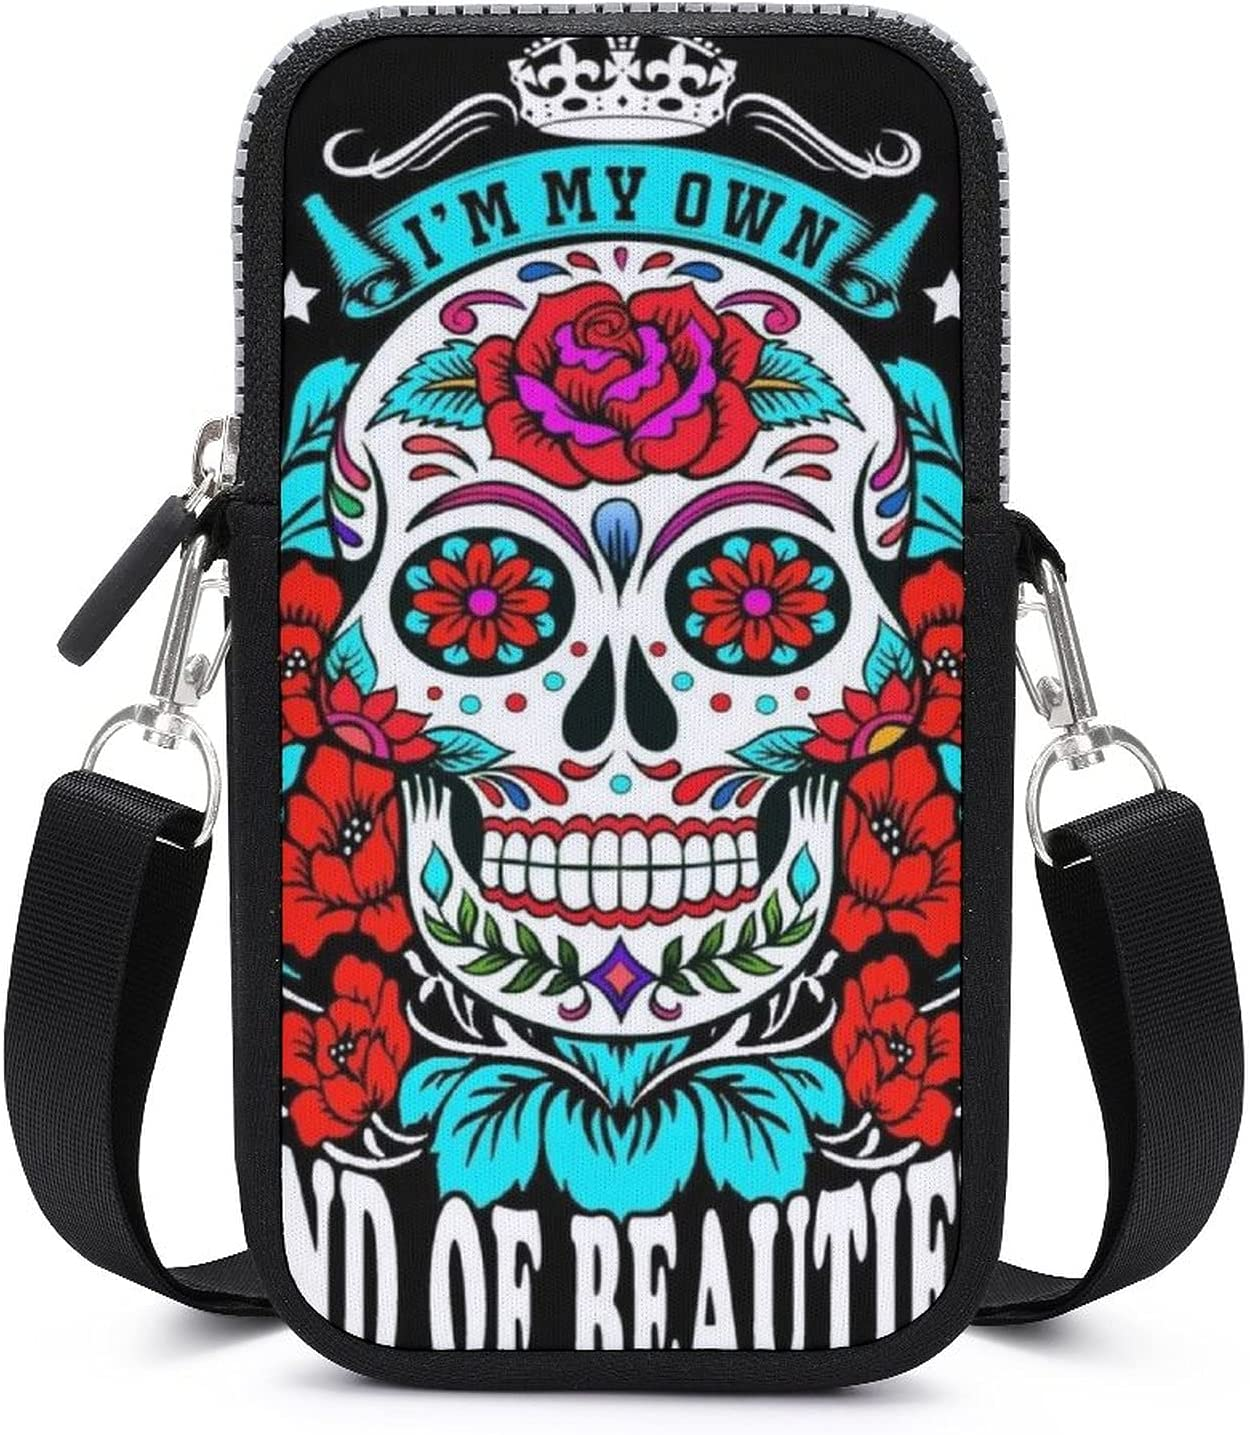 NiYoung Passport, Credit Card Universal Cell Phone Purse - ANI-Theft Water Resistant Multifunctional Jewelry Bag Skull Head Rose Wristlet Convertible Cross Body Bag